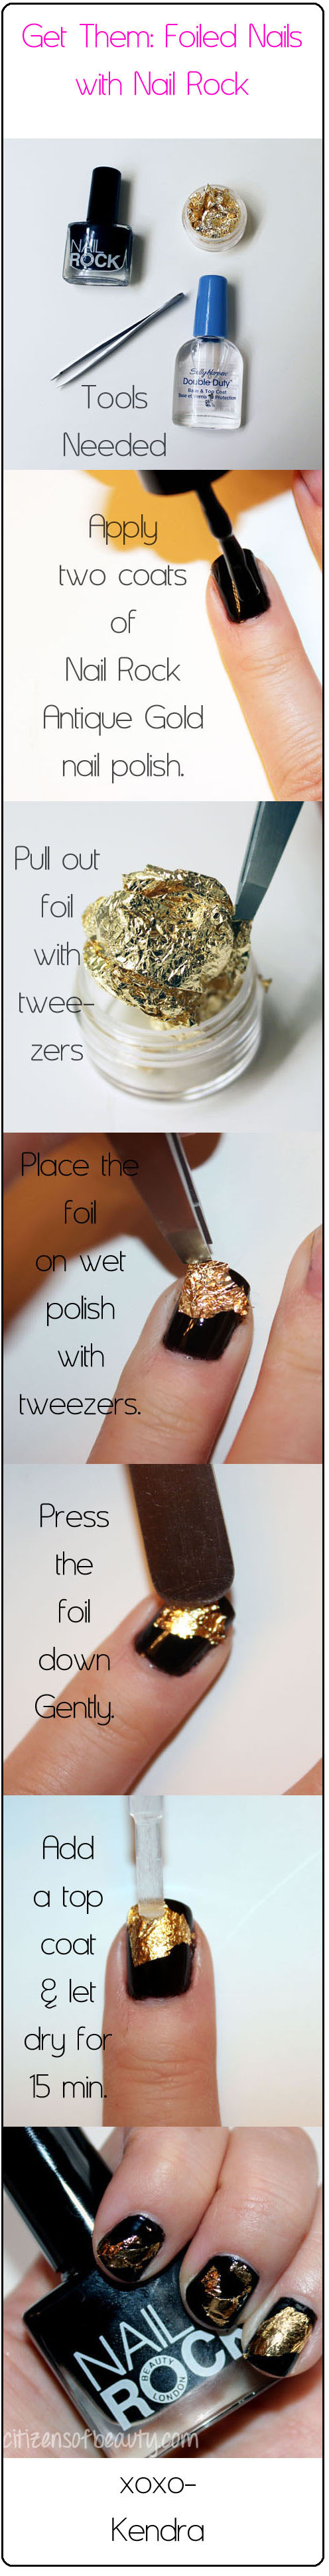 NAIL ROCK FOIL KIT TUTORIAL